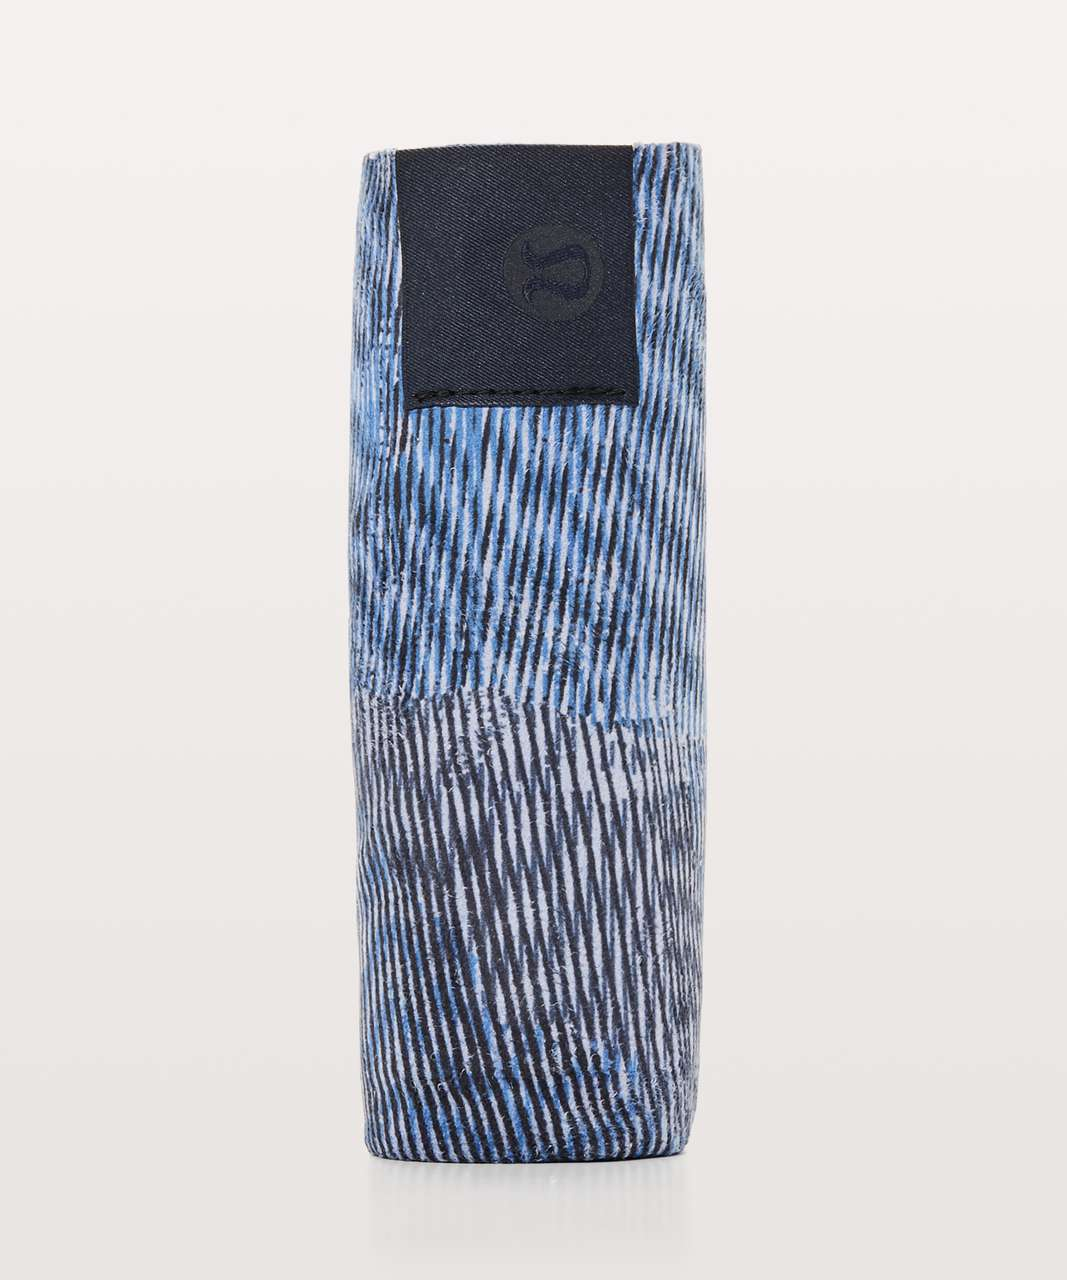 Lululemon The (Small) Towel - Linear Flux Ice Grey Multi